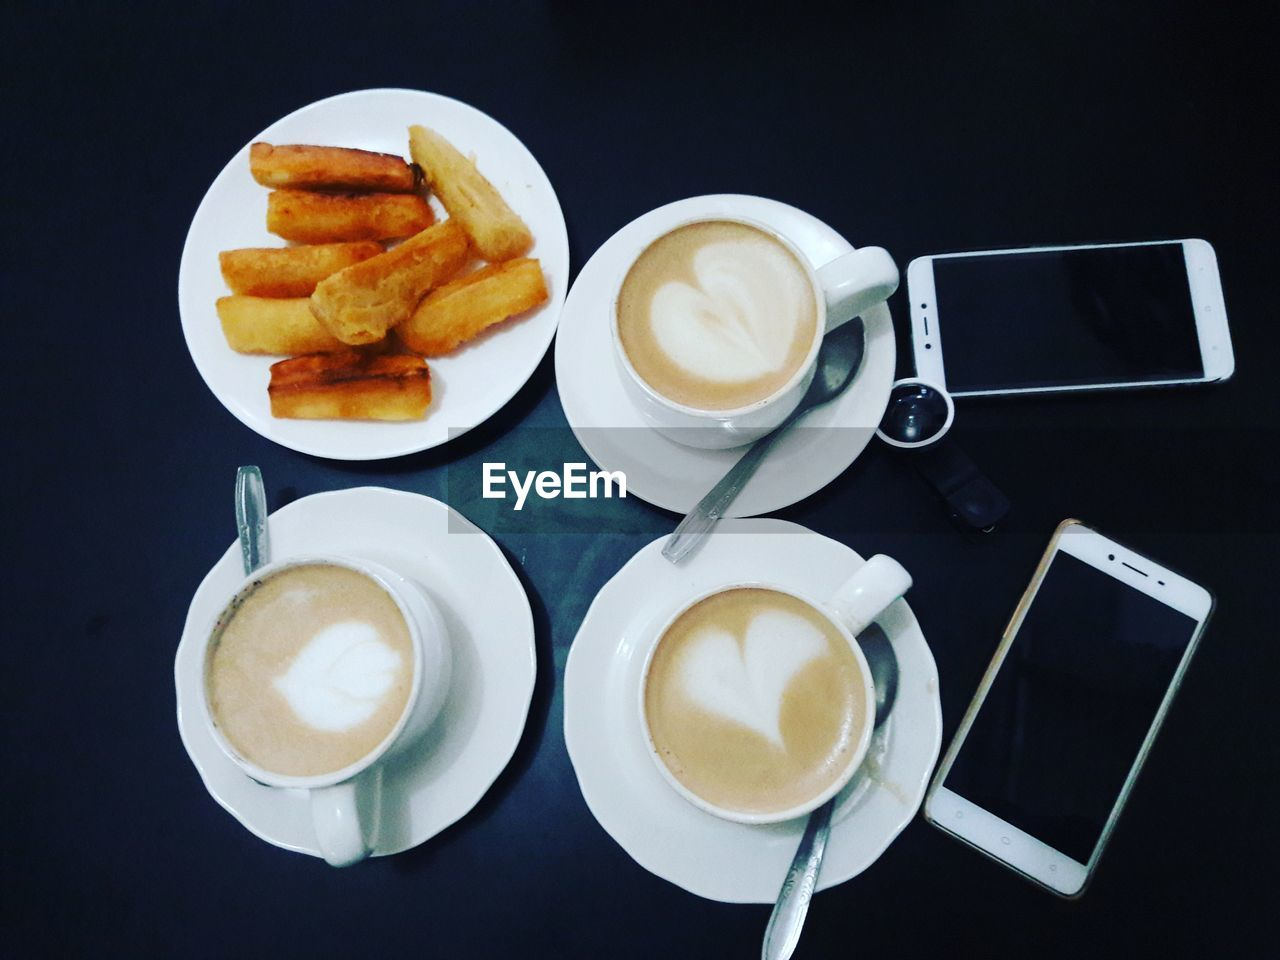 food and drink, cup, coffee, drink, coffee cup, mug, refreshment, coffee - drink, ready-to-eat, table, frothy drink, indoors, still life, no people, freshness, food, hot drink, french fries, eating utensil, kitchen utensil, crockery, fried, meal, snack, latte, breakfast, tray